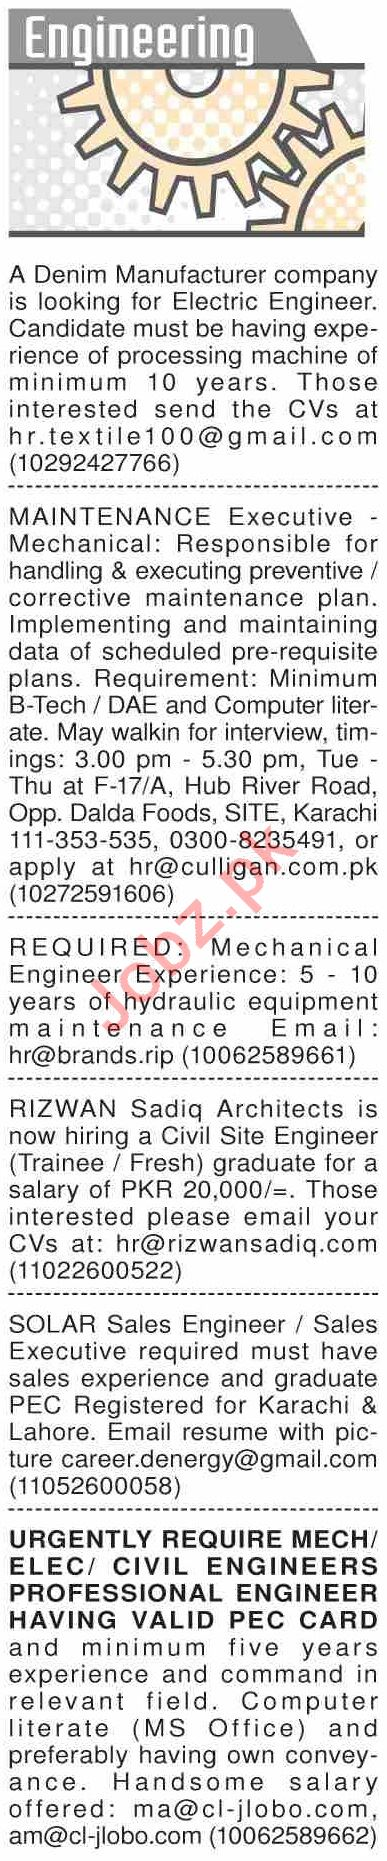 Dawn Sunday Classified Ads 15th March 2020 for Engineers